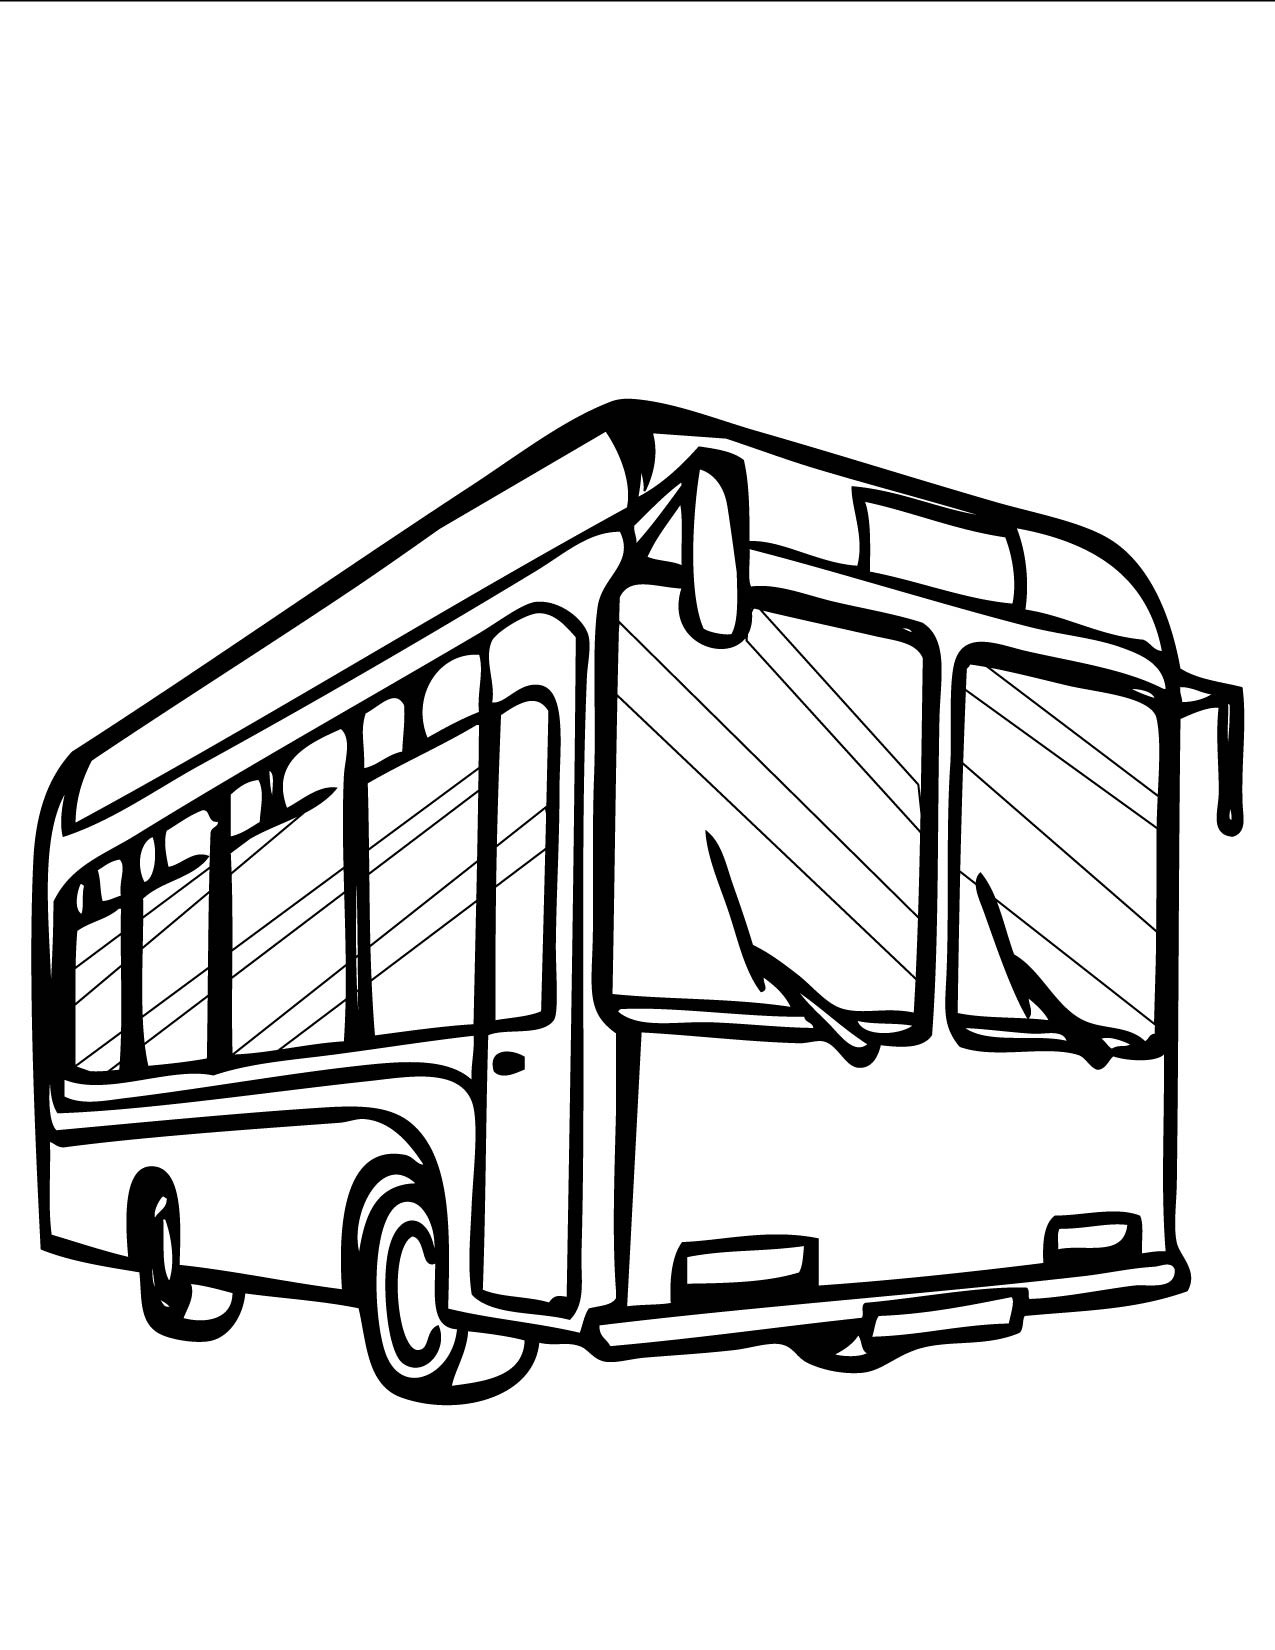 drawing of bus filedraw buspng wikimedia commons bus of drawing